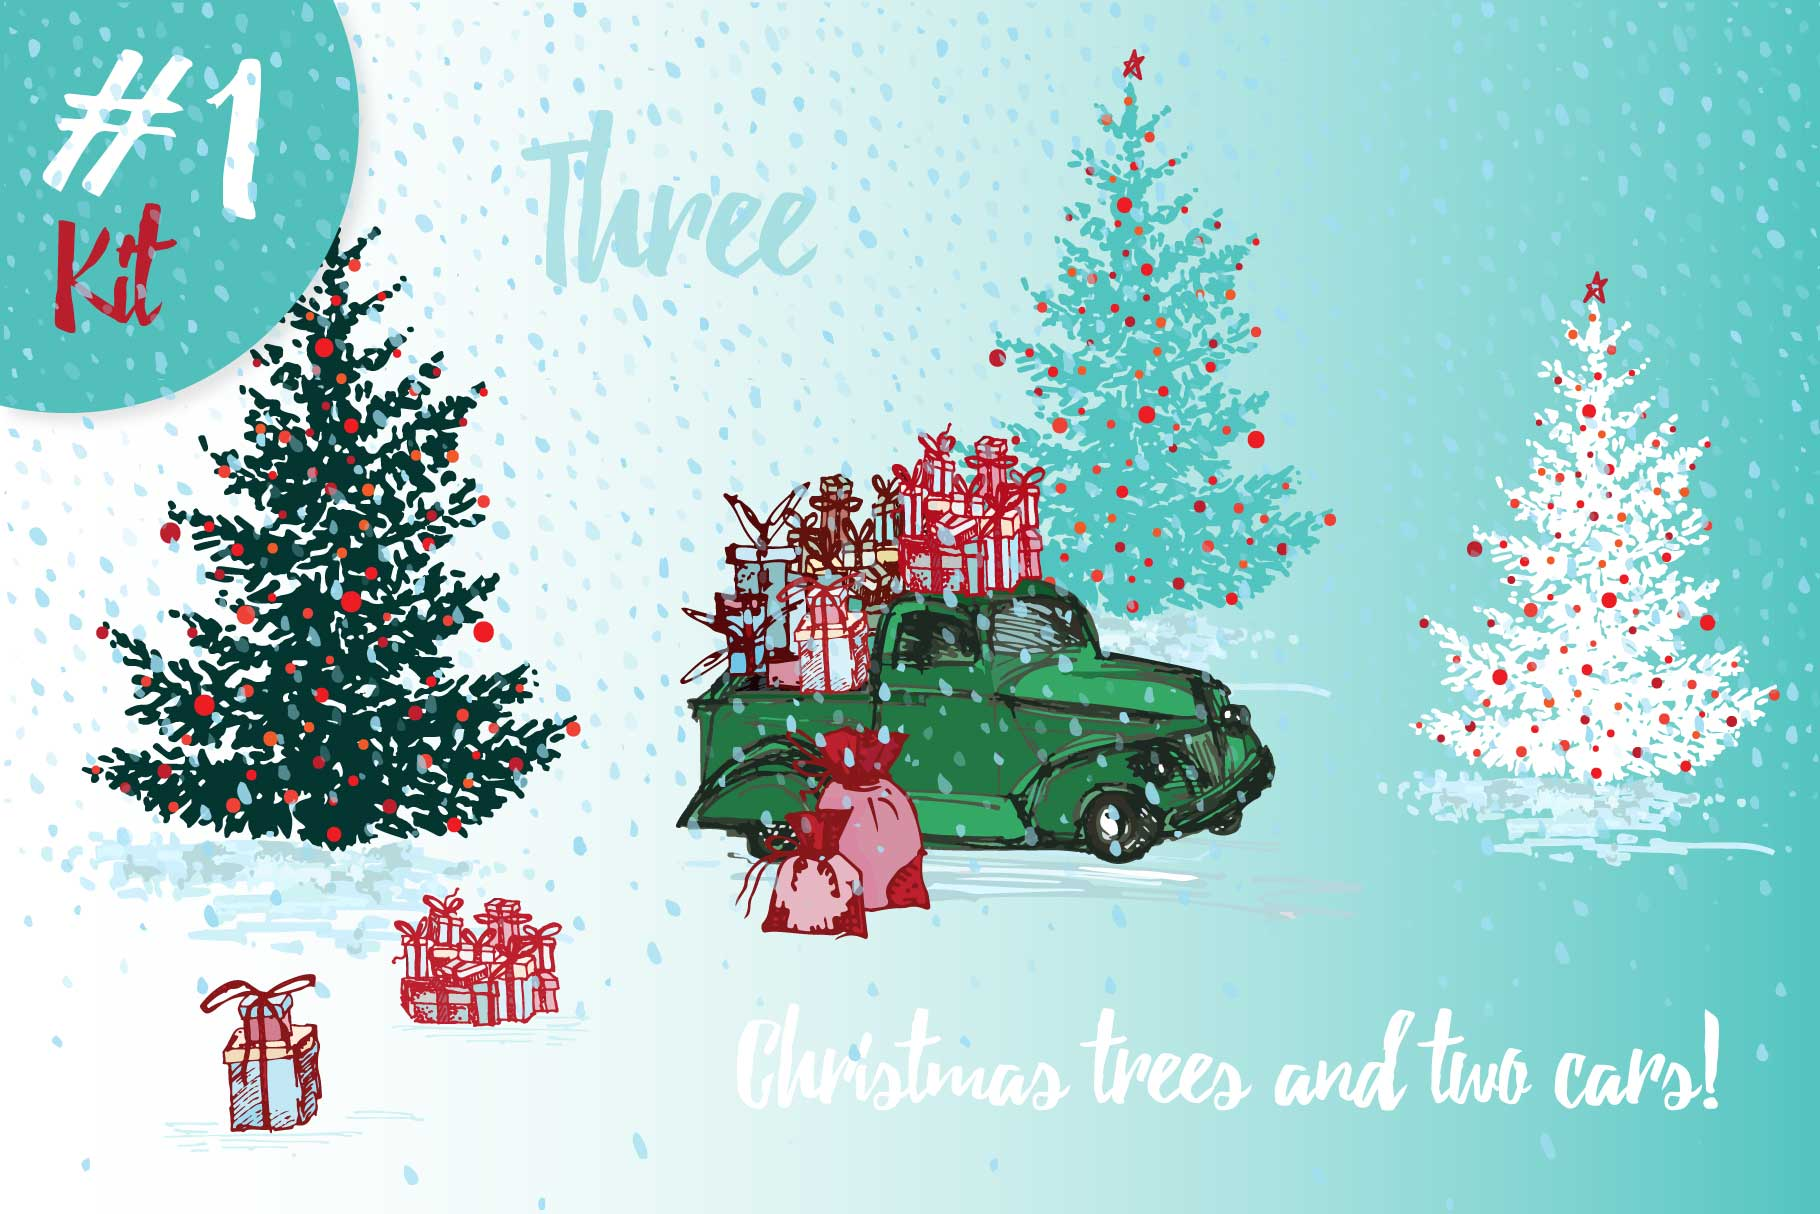 Hand drawn sketch Christmas tree and holiday cars example image 1